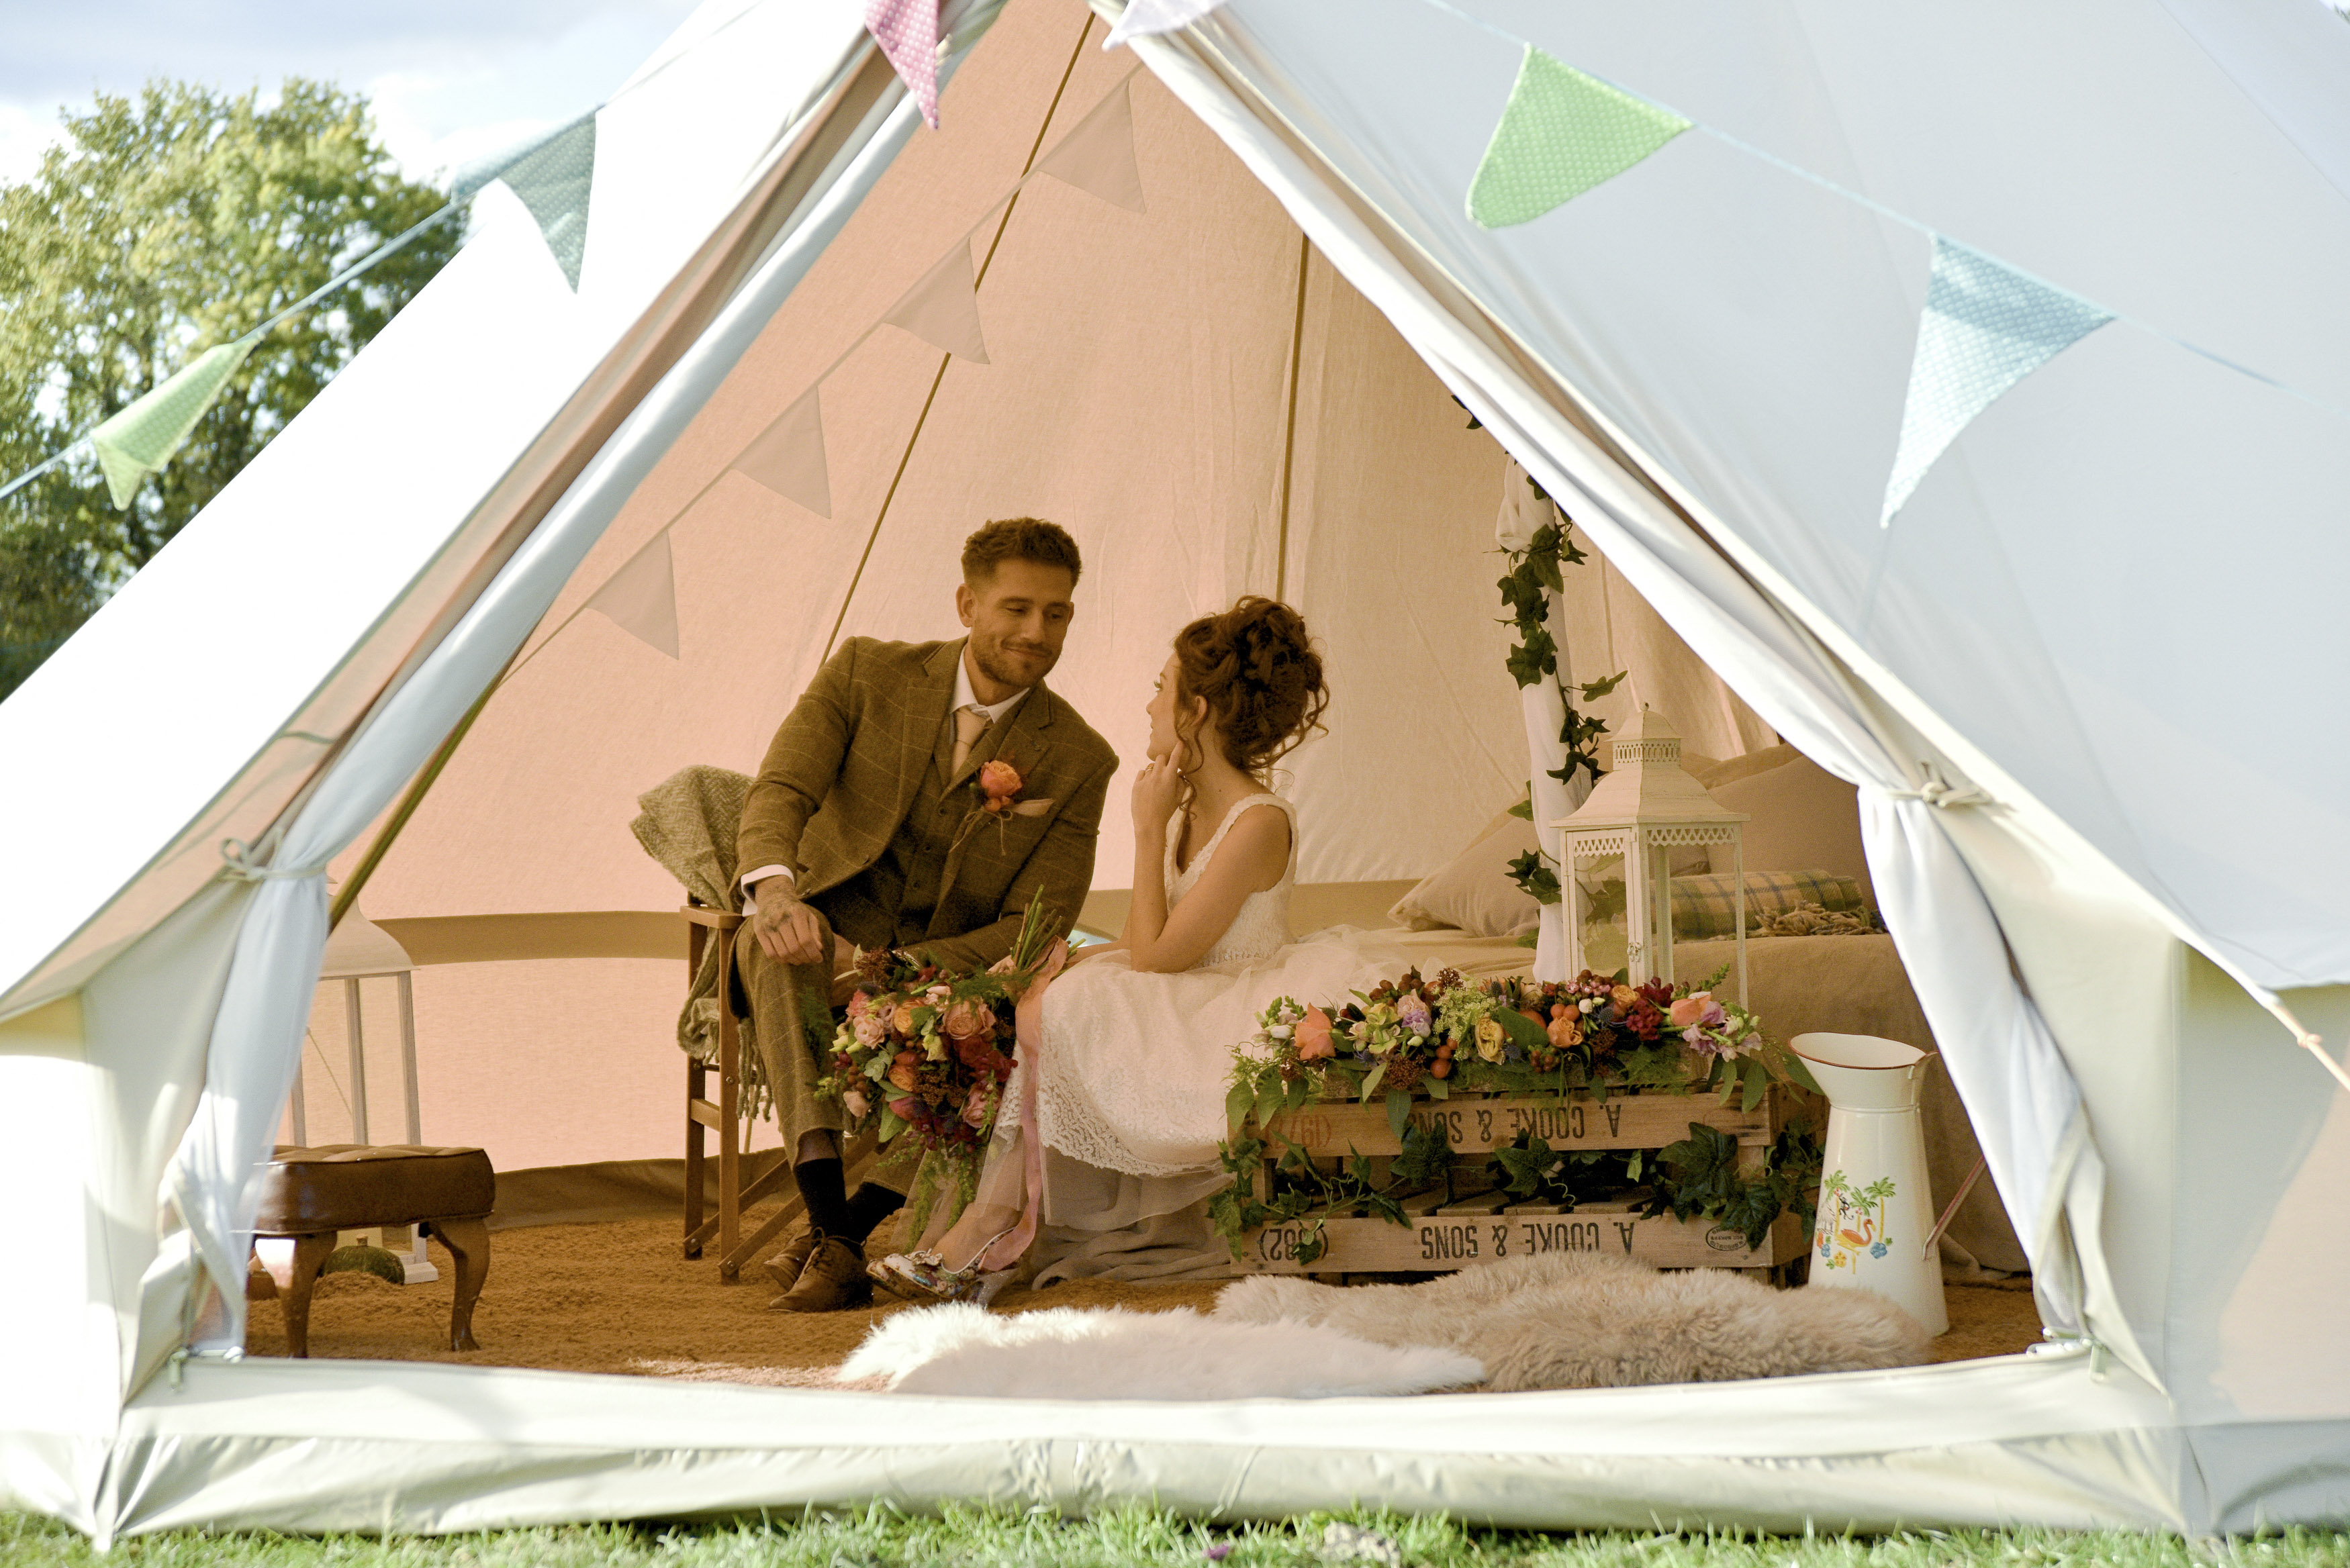 Step-By-Step Guide: How To Plan a Tipi Wedding To Make Your Day Extra Special